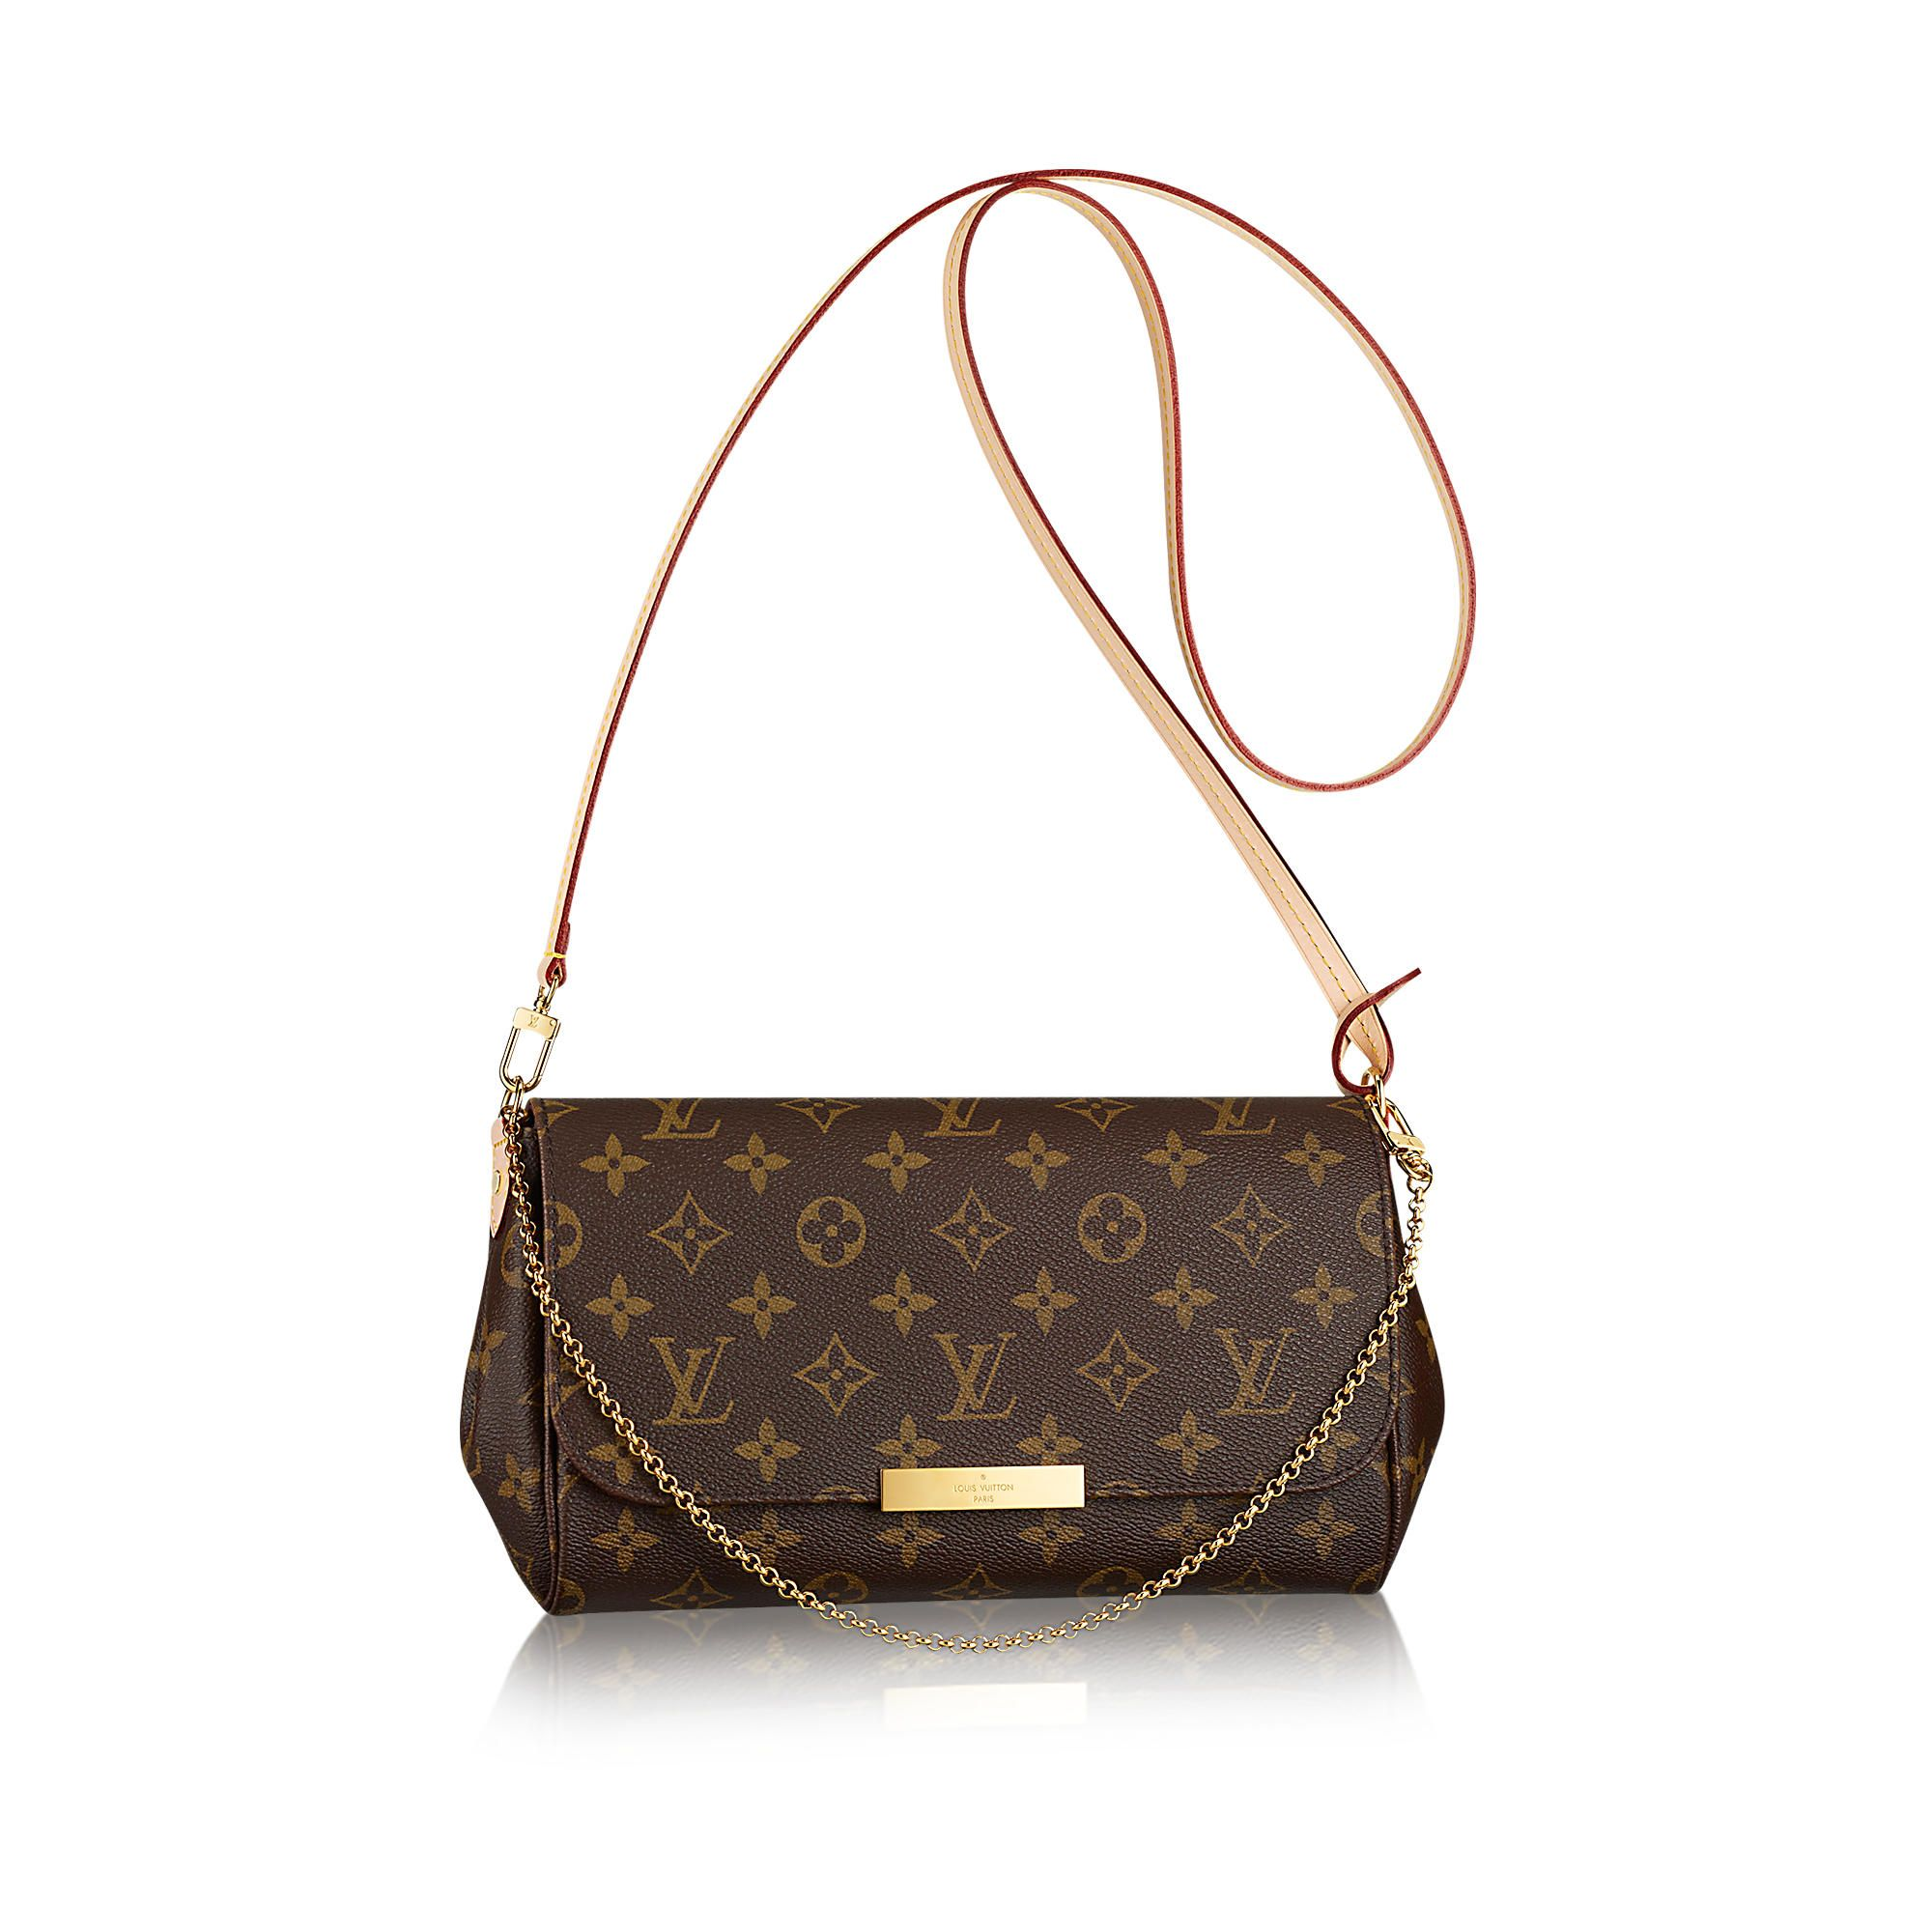 3d84aebd9dc3 key product page share discover product Favorite MM via Louis Vuitton